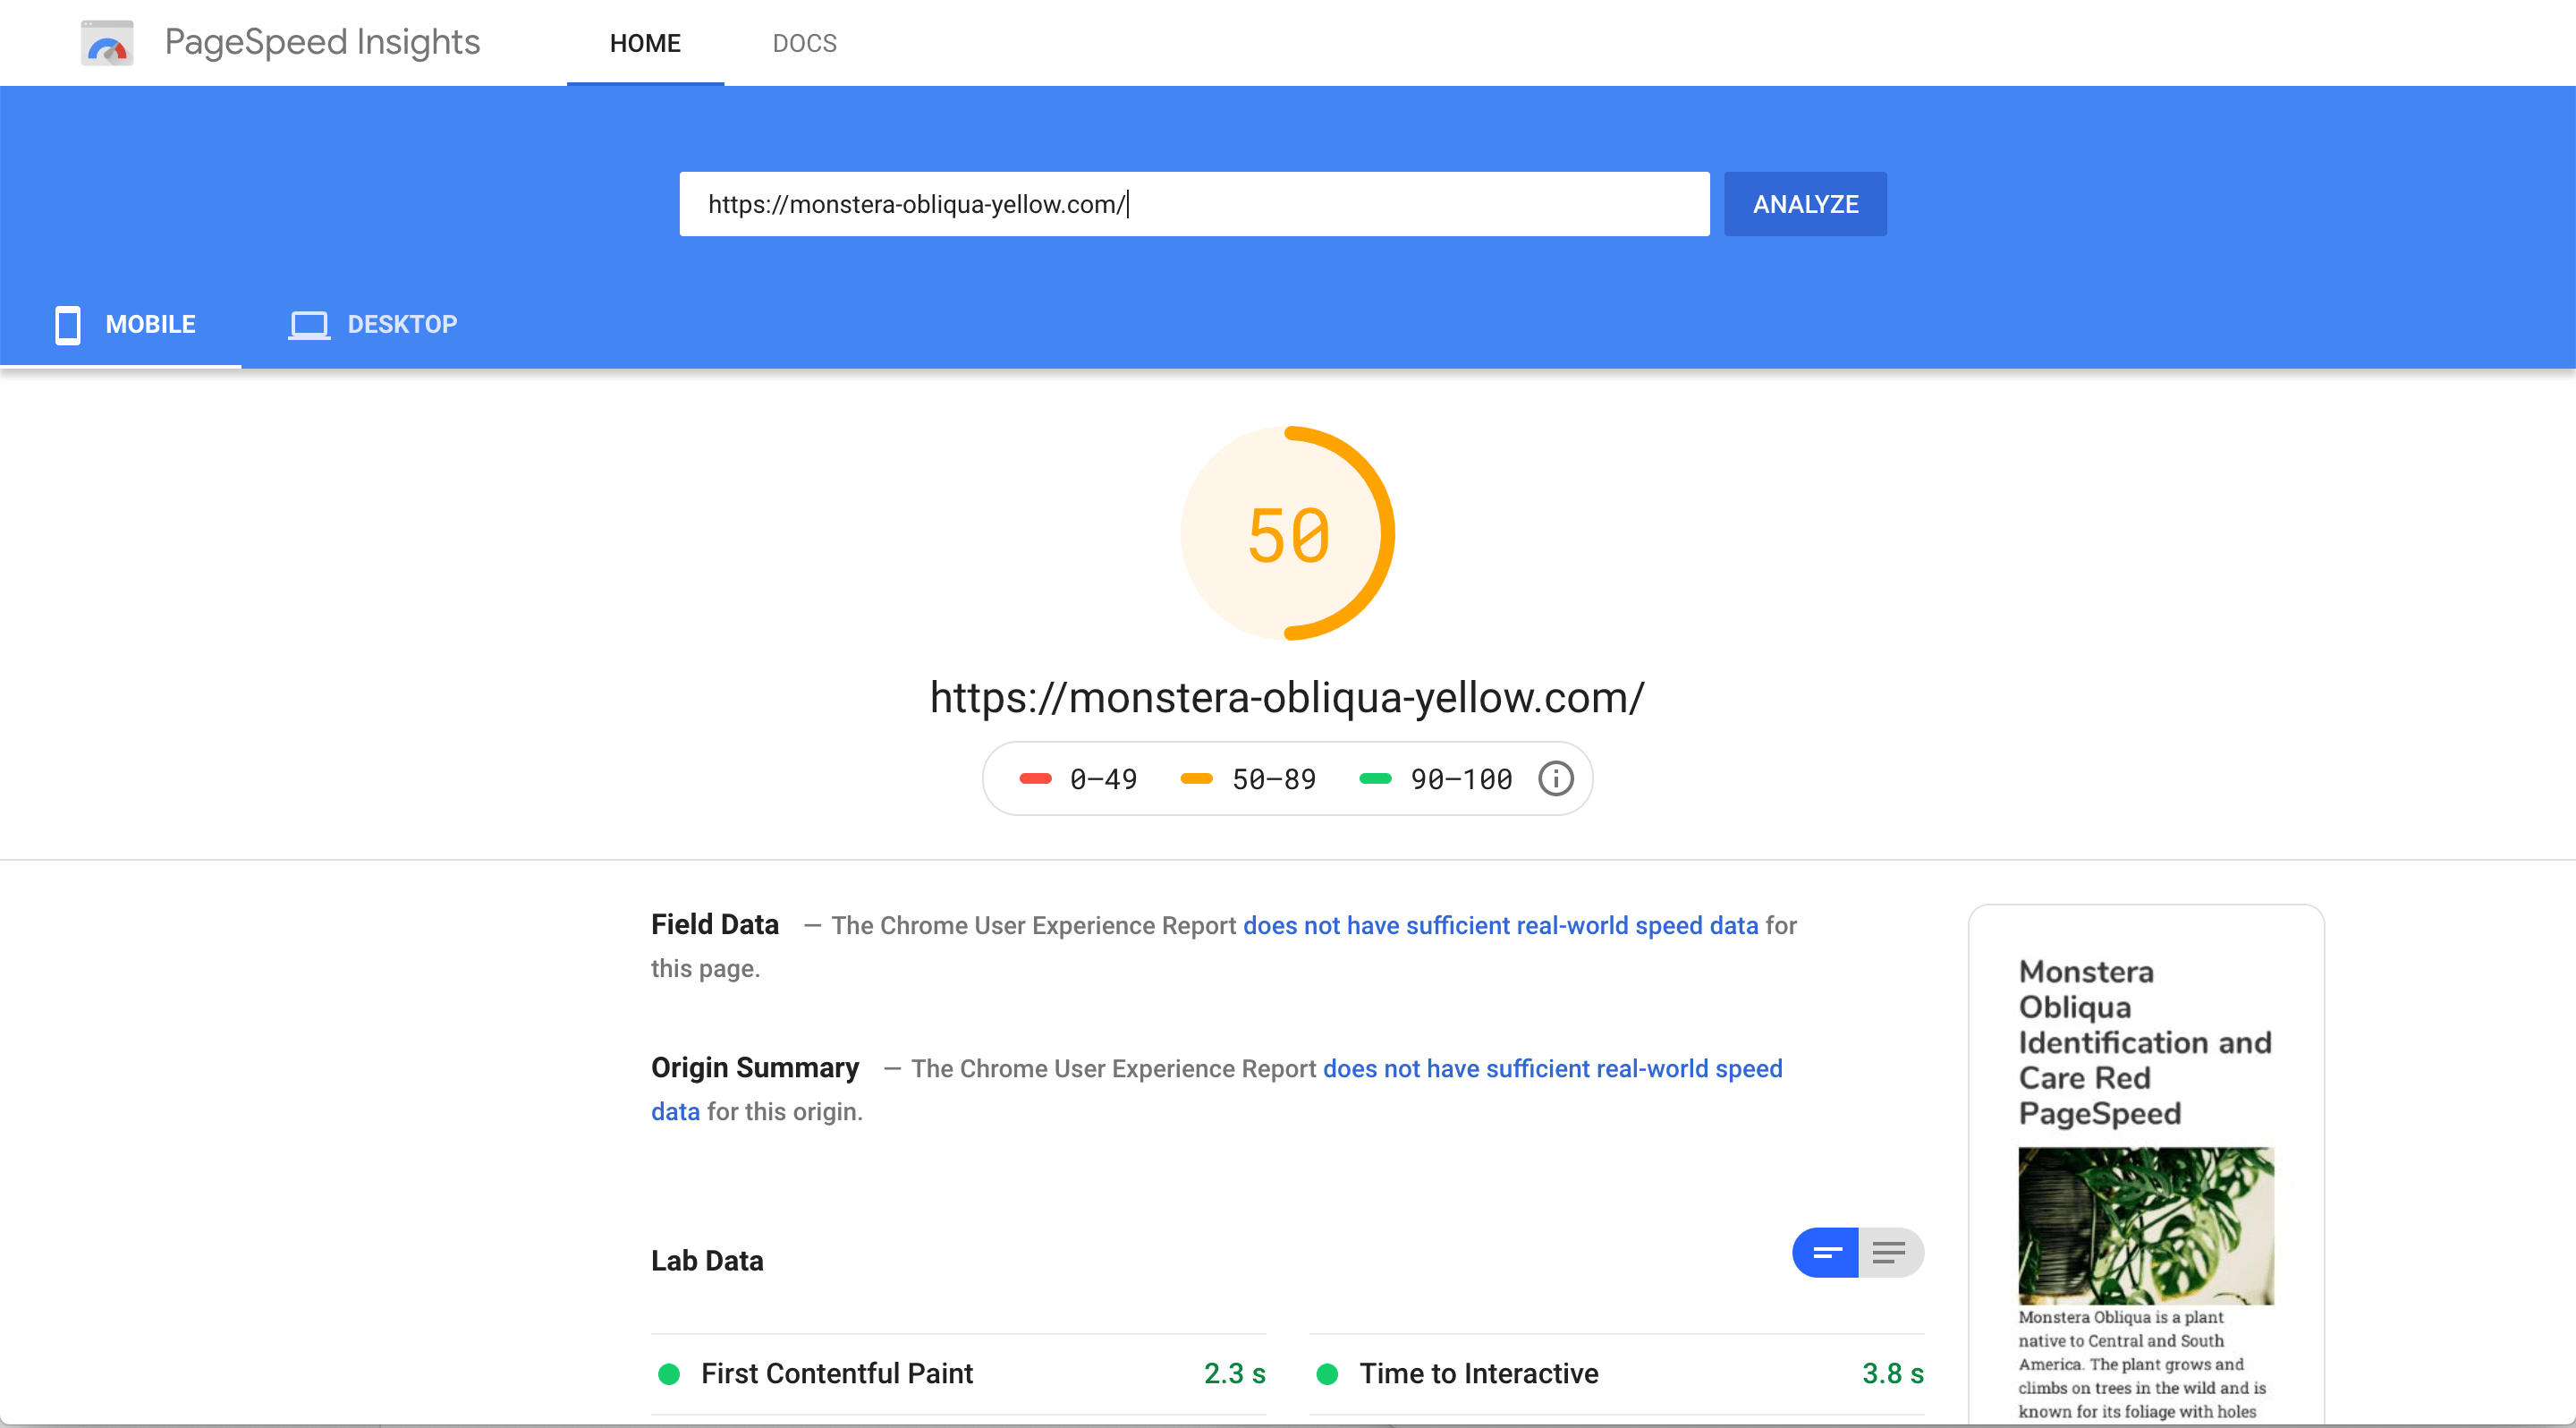 Yellow page speed score